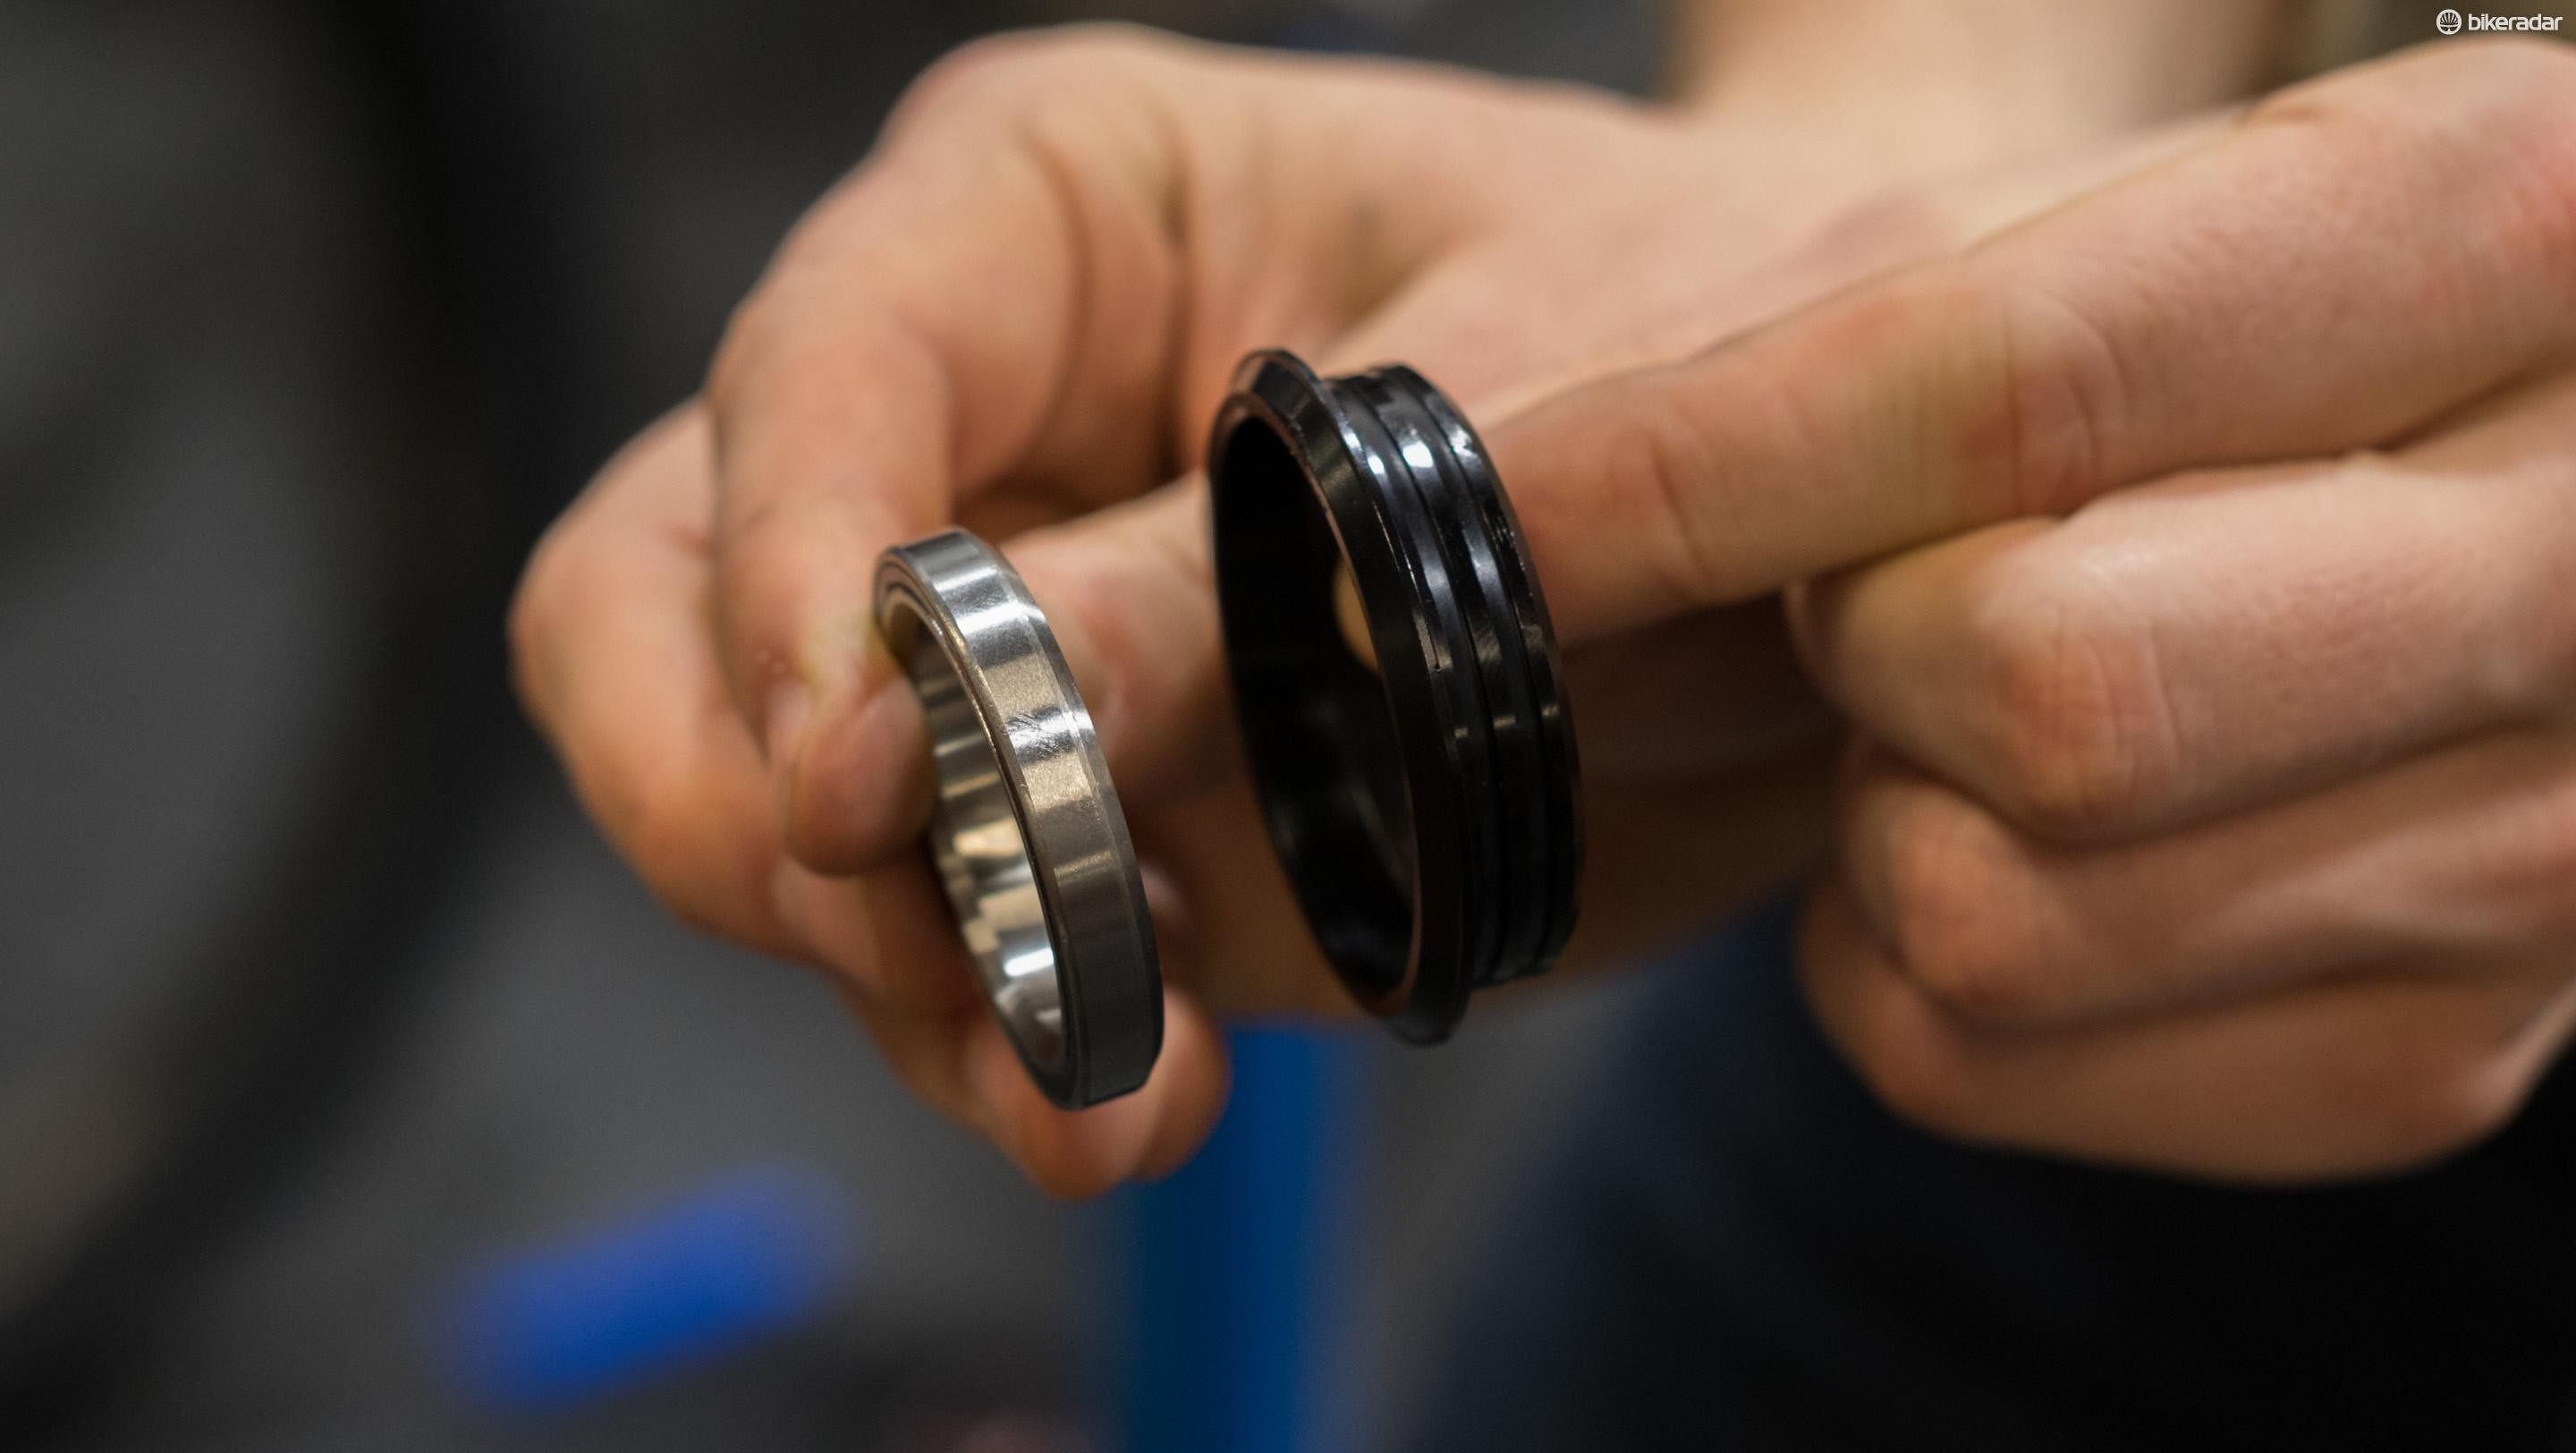 Older loose bearings rolled directly on the hardened steel race